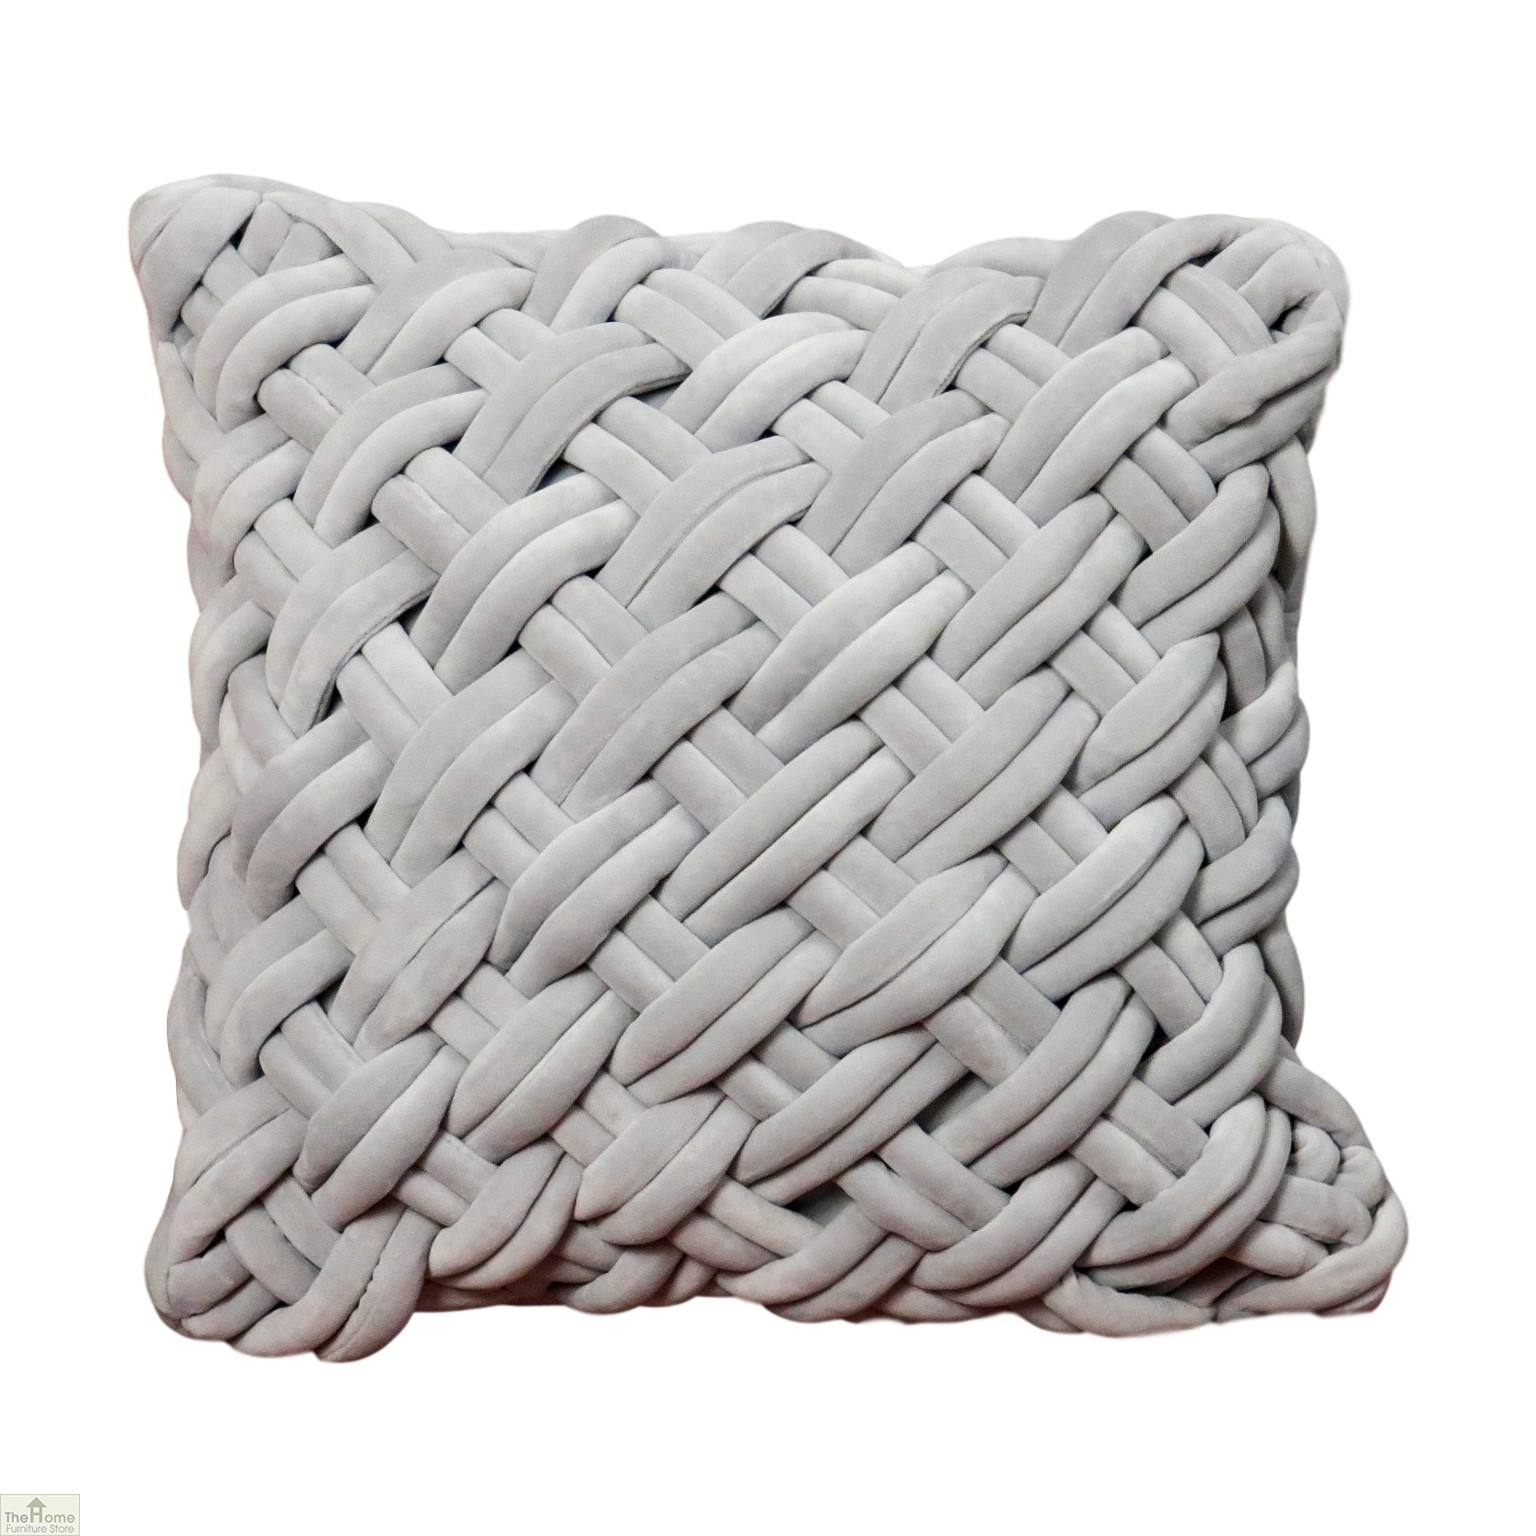 Handknotted Grey Velvet Cushion Cover